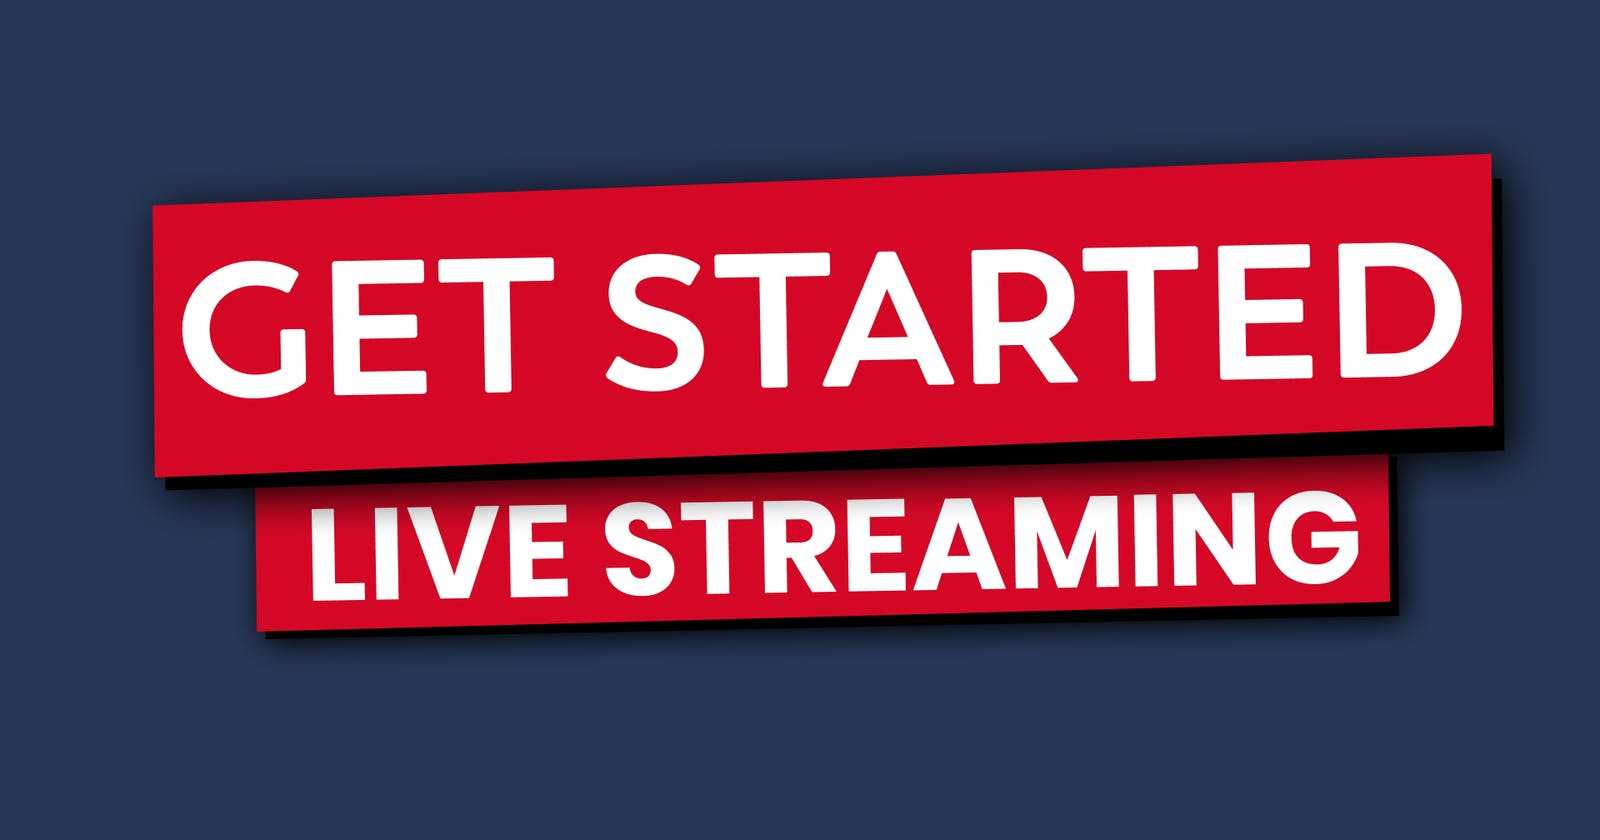 Why and How to Get Started Live Streaming